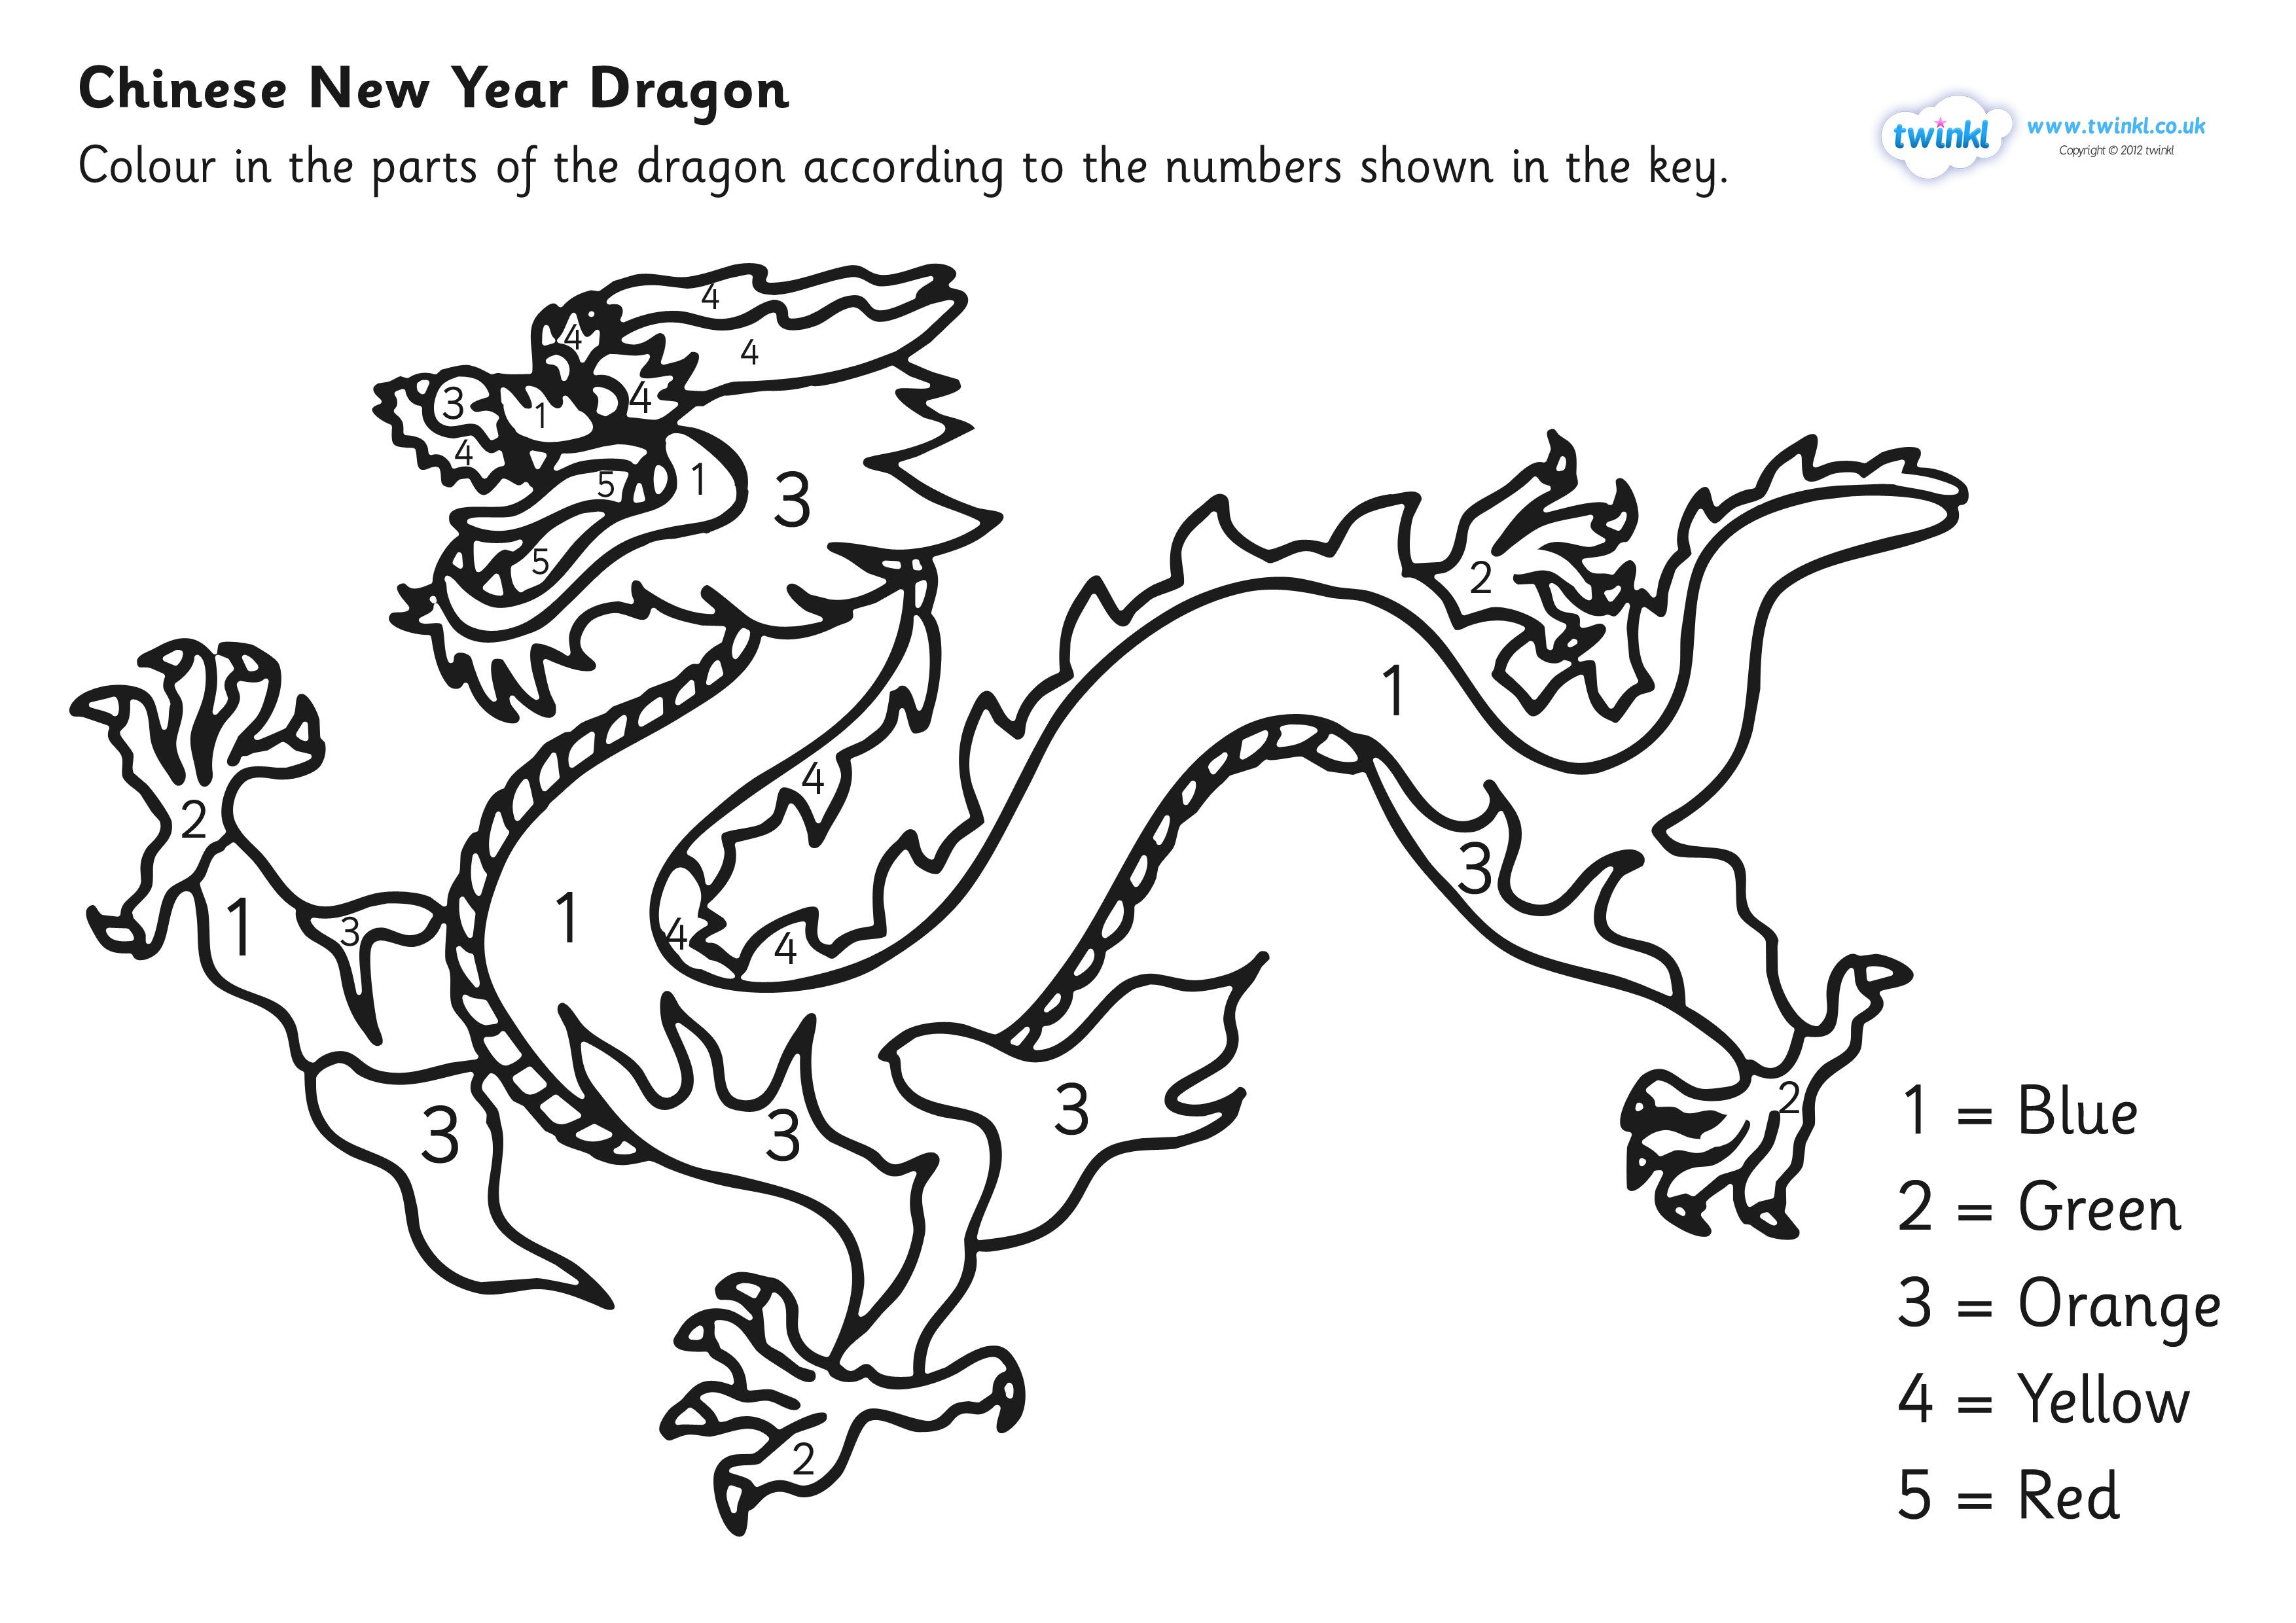 Chinese Dragon Colouring By Numbers Sheet Pop Over To Our Site At Www Twinkl Co Uk And Check Ou Dragon Coloring Page Chinese New Year Dragon Color By Numbers